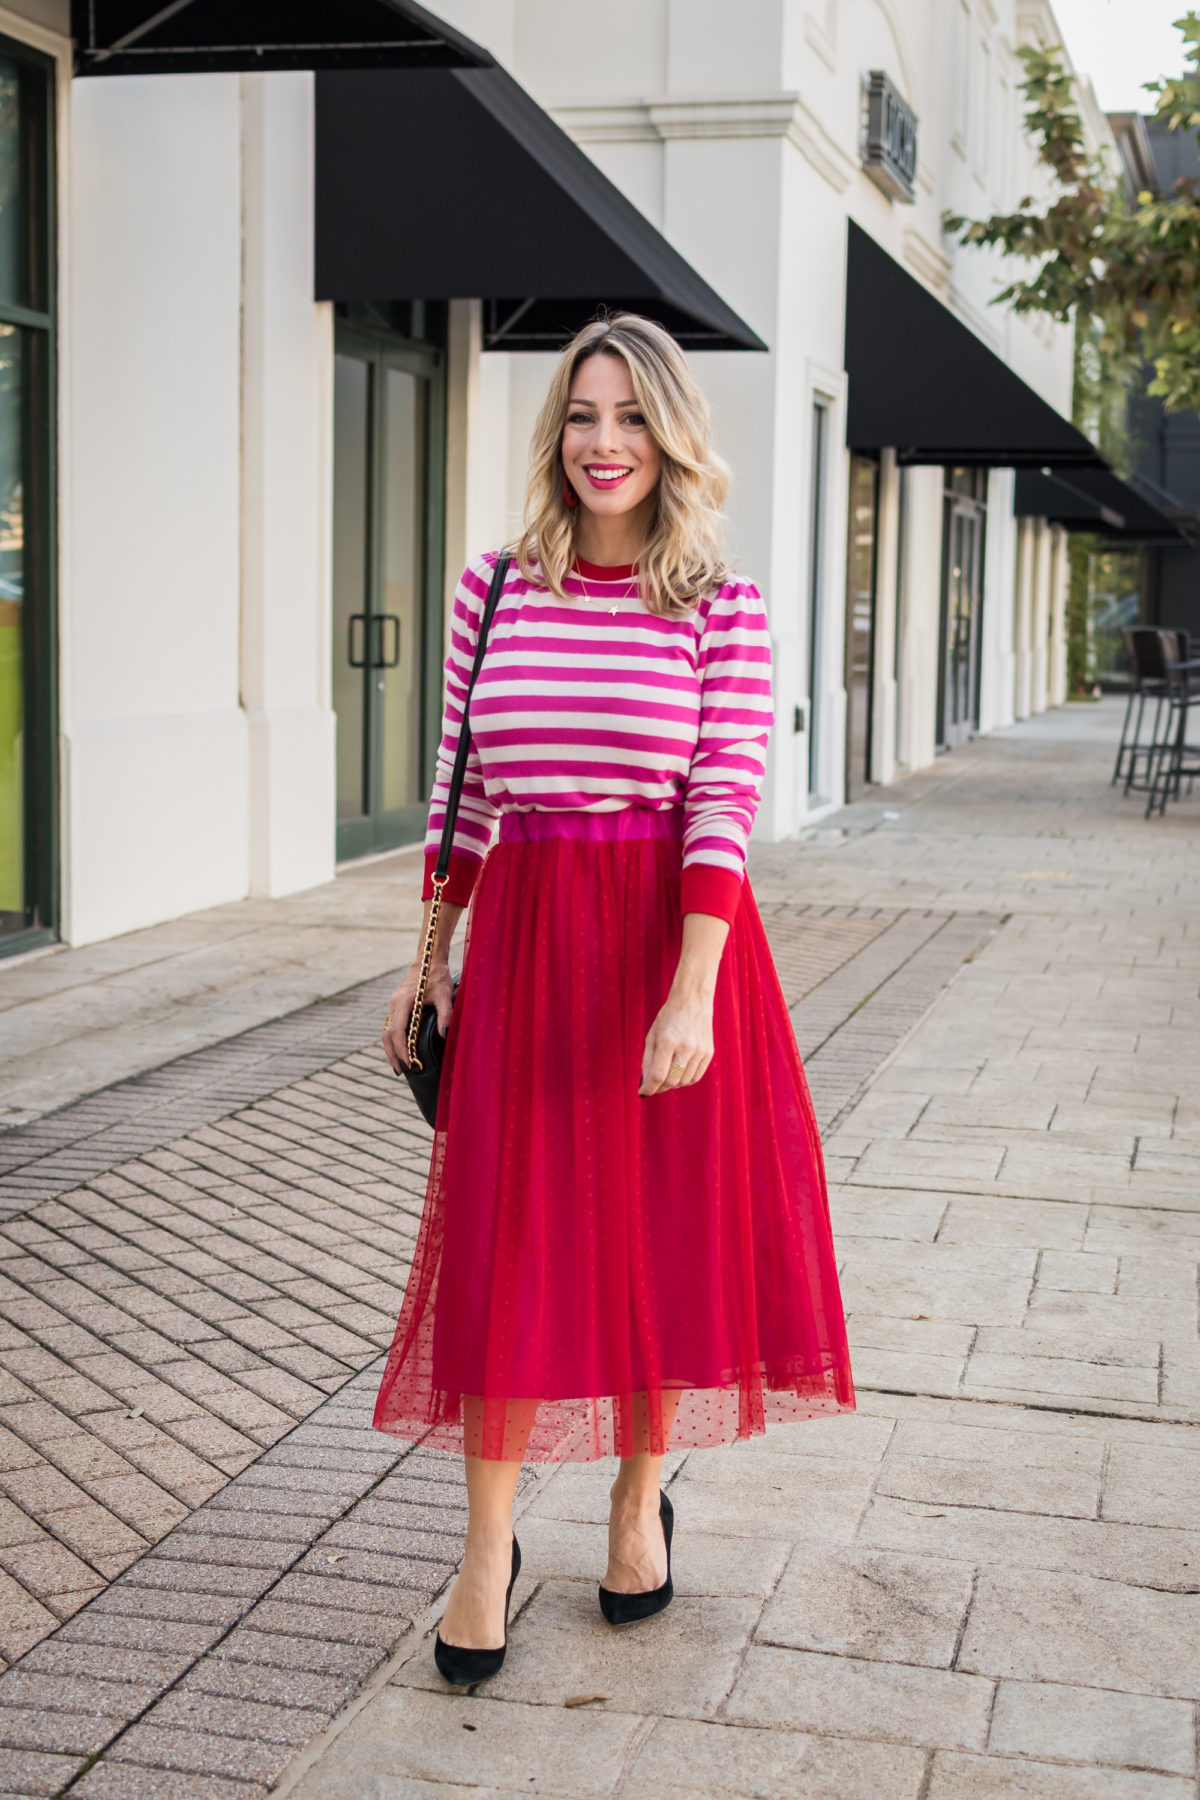 Gibson Fashion, Striped Sweater, Tulle Skirt, Black Heels, Crossbody